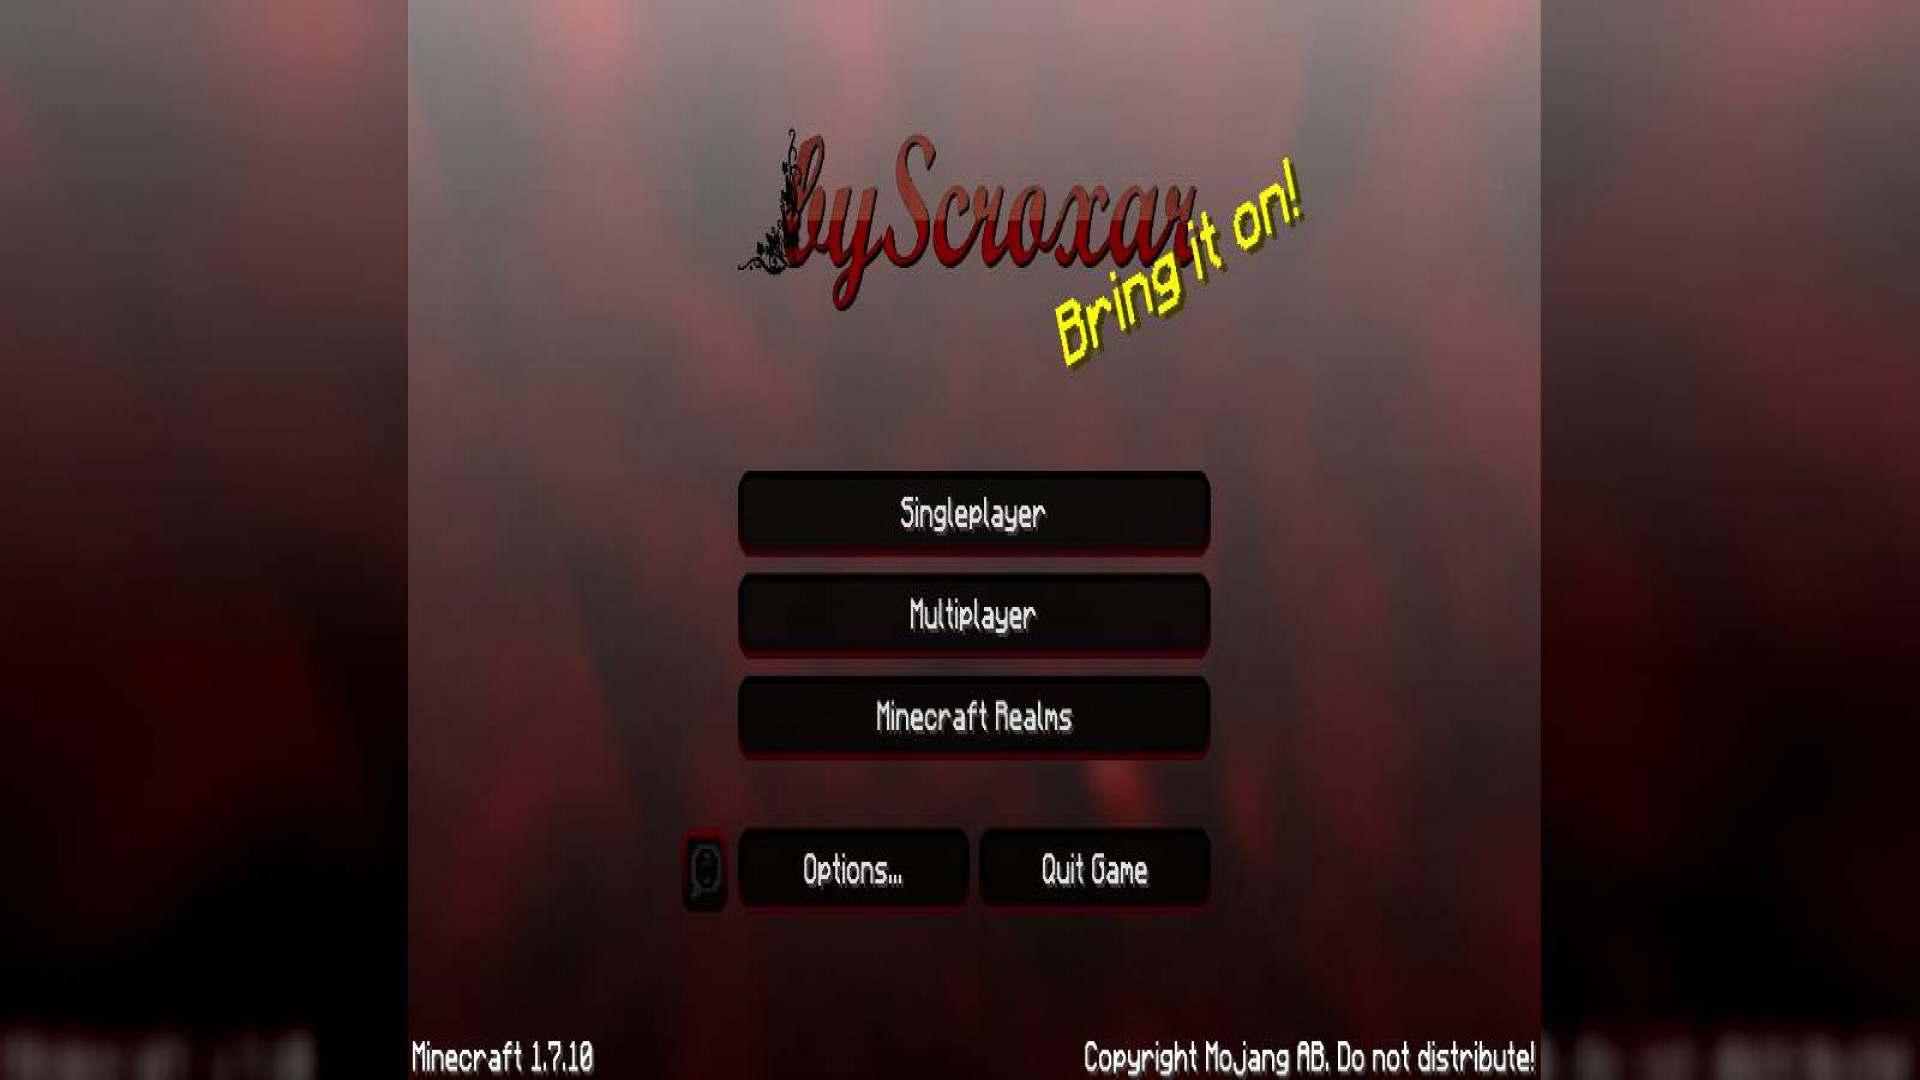 byScroxar Pack